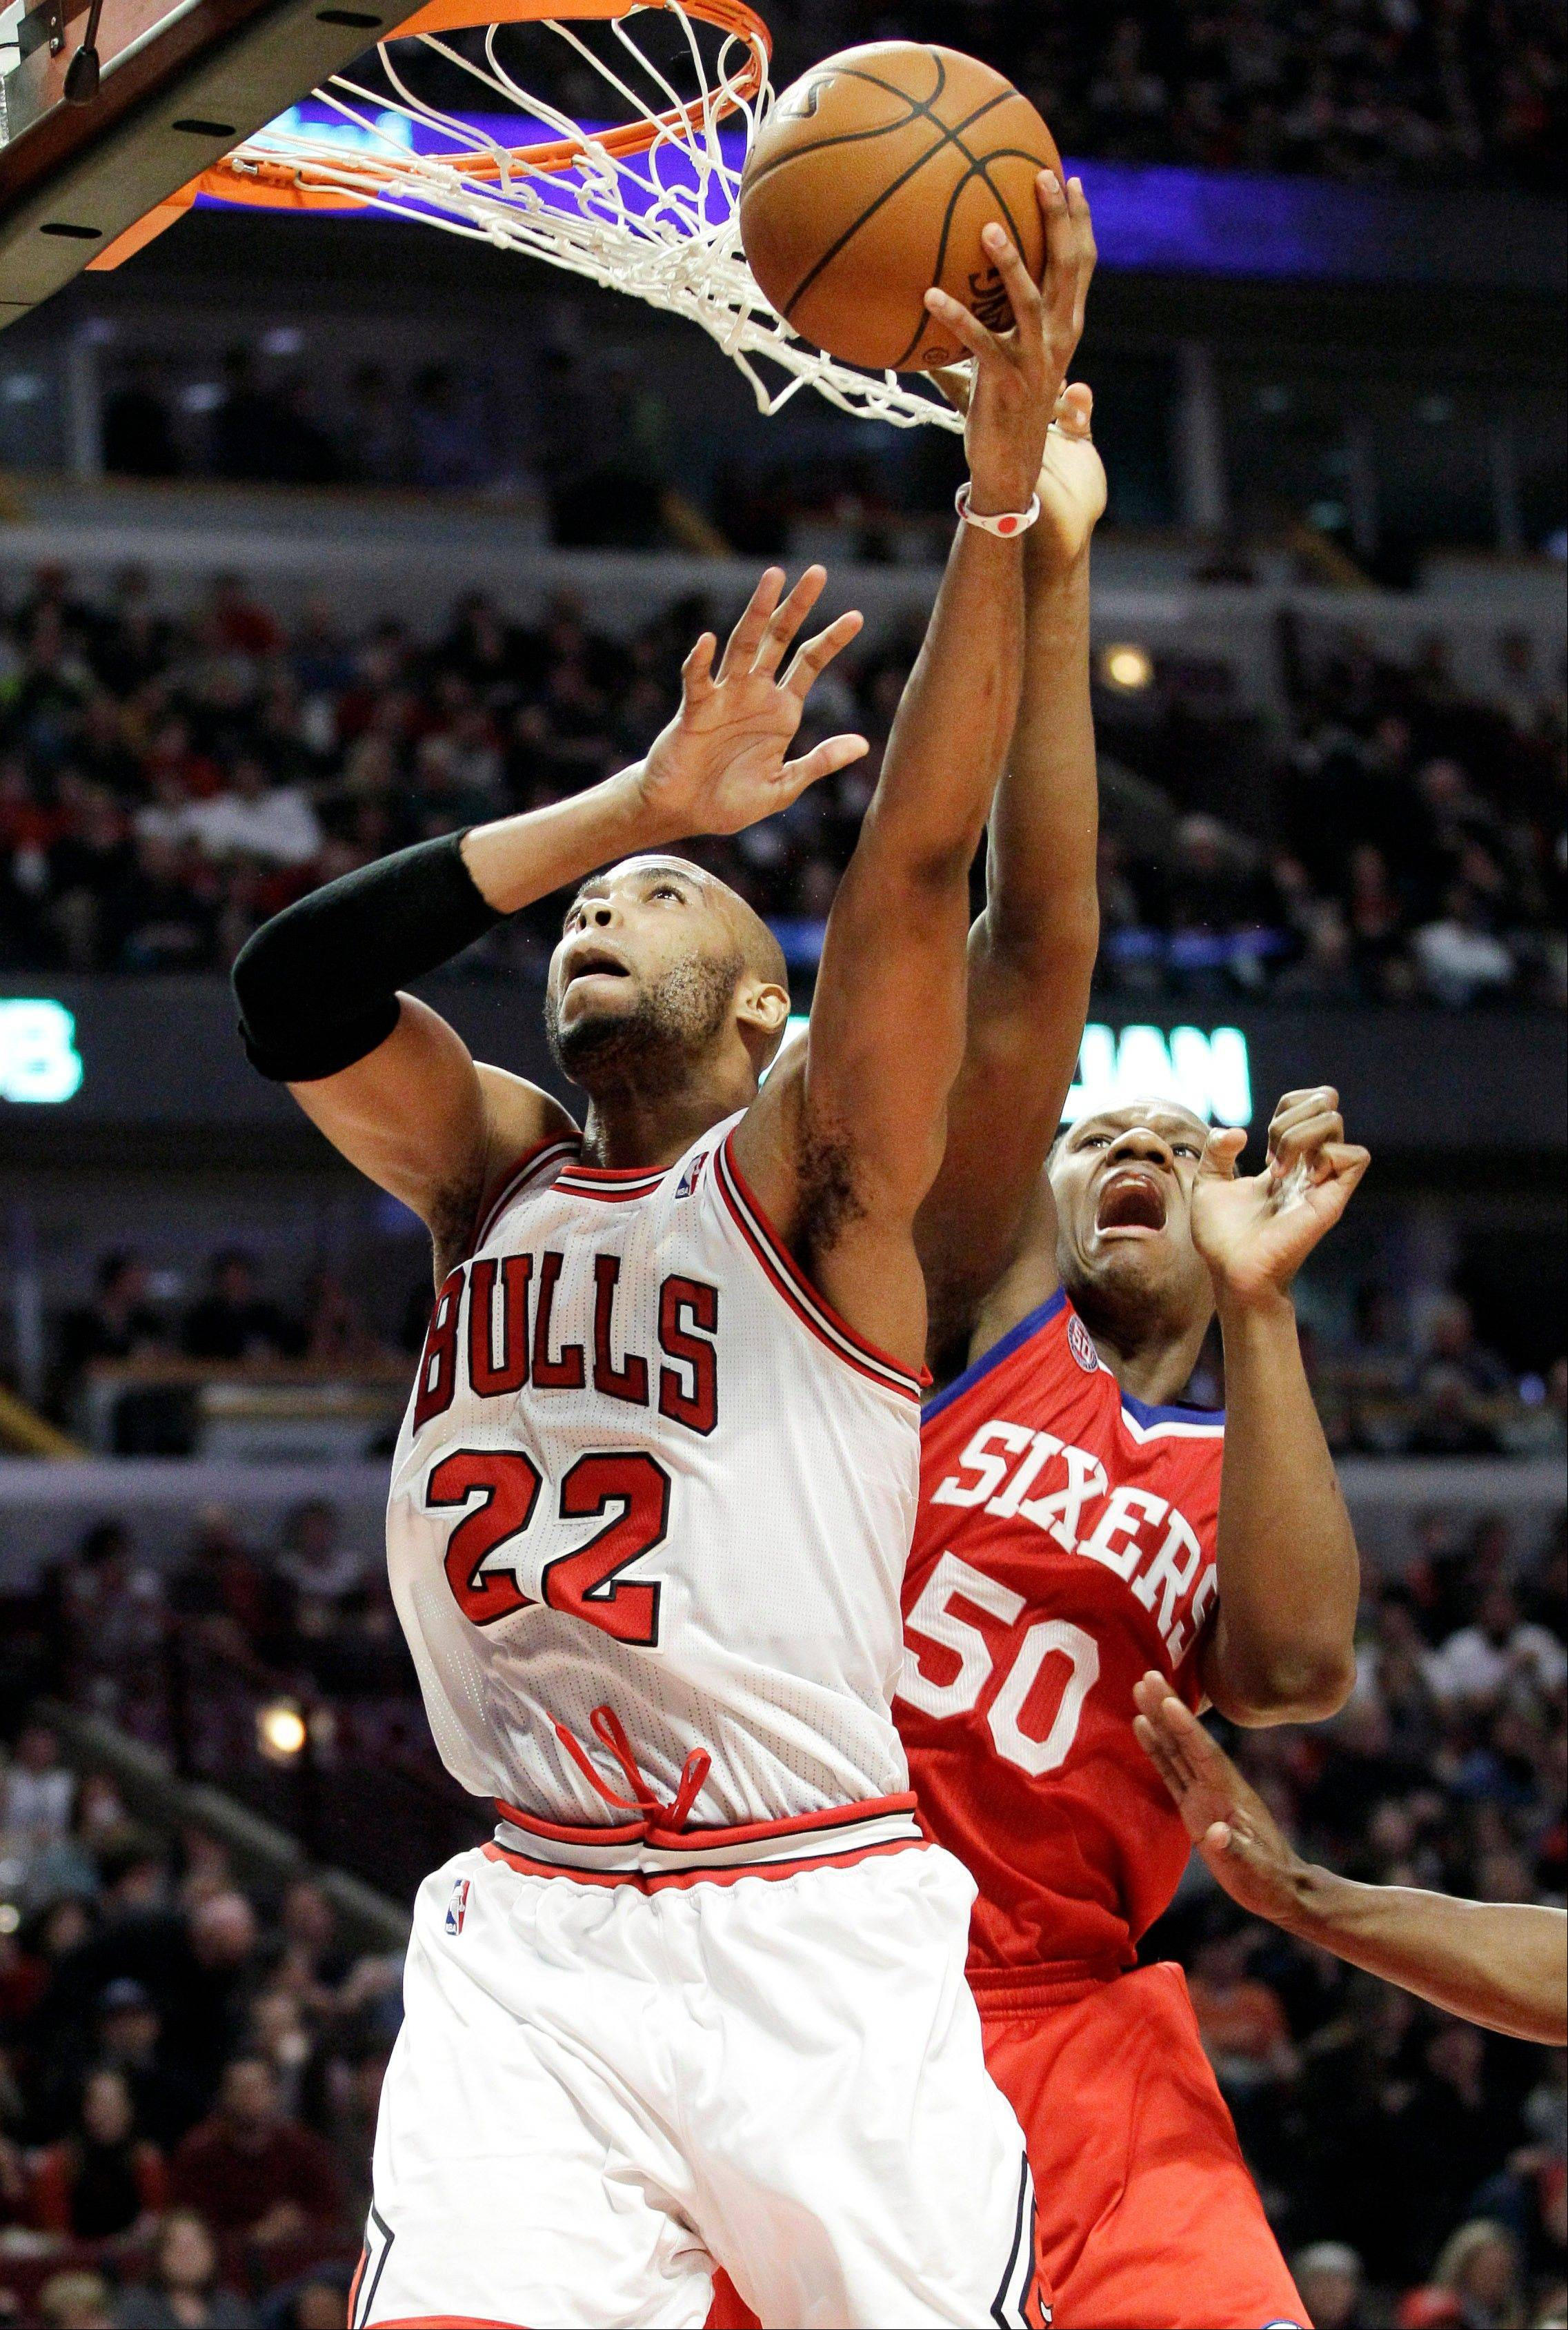 Bulls forward Taj Gibson, left, shoots against Philadelphia 76ers center Lavoy Allen during the second half of an NBA basketball game in Chicago on Saturday, Dec. 1, 2012. The Bulls won 93-88.